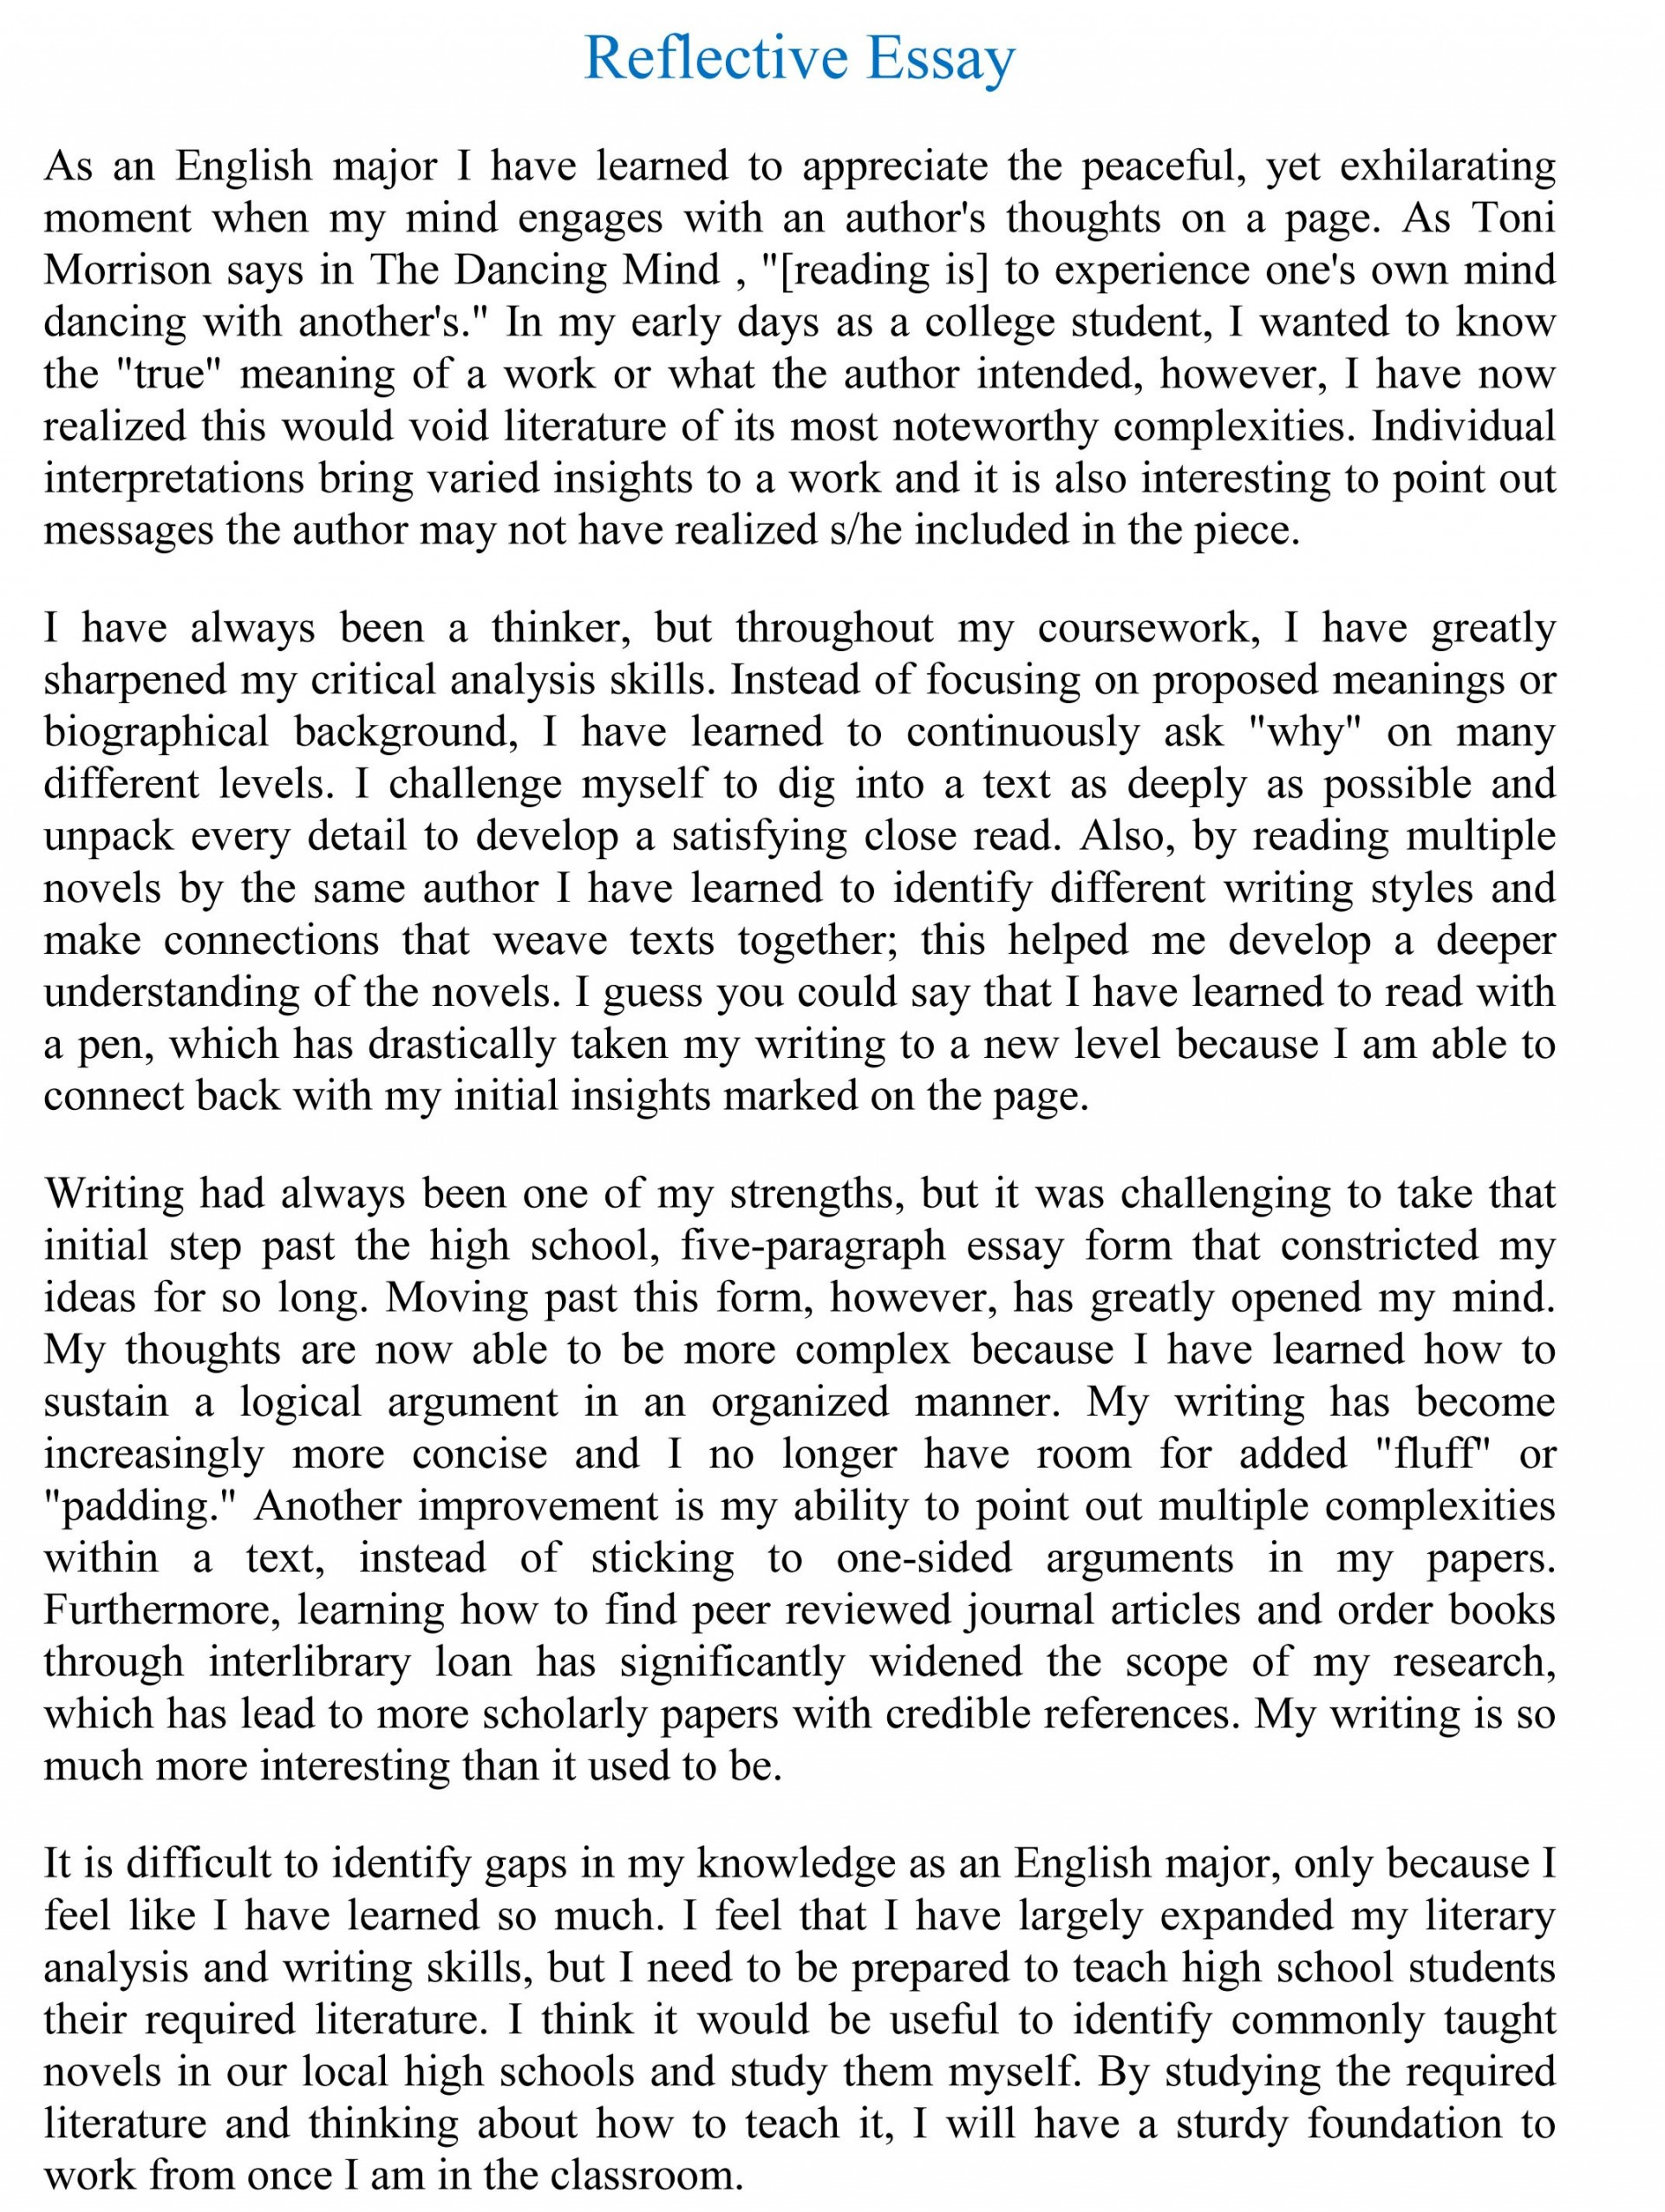 004 Reflective Essay Sample How To Start Introduction Surprising A Write An Example 1920